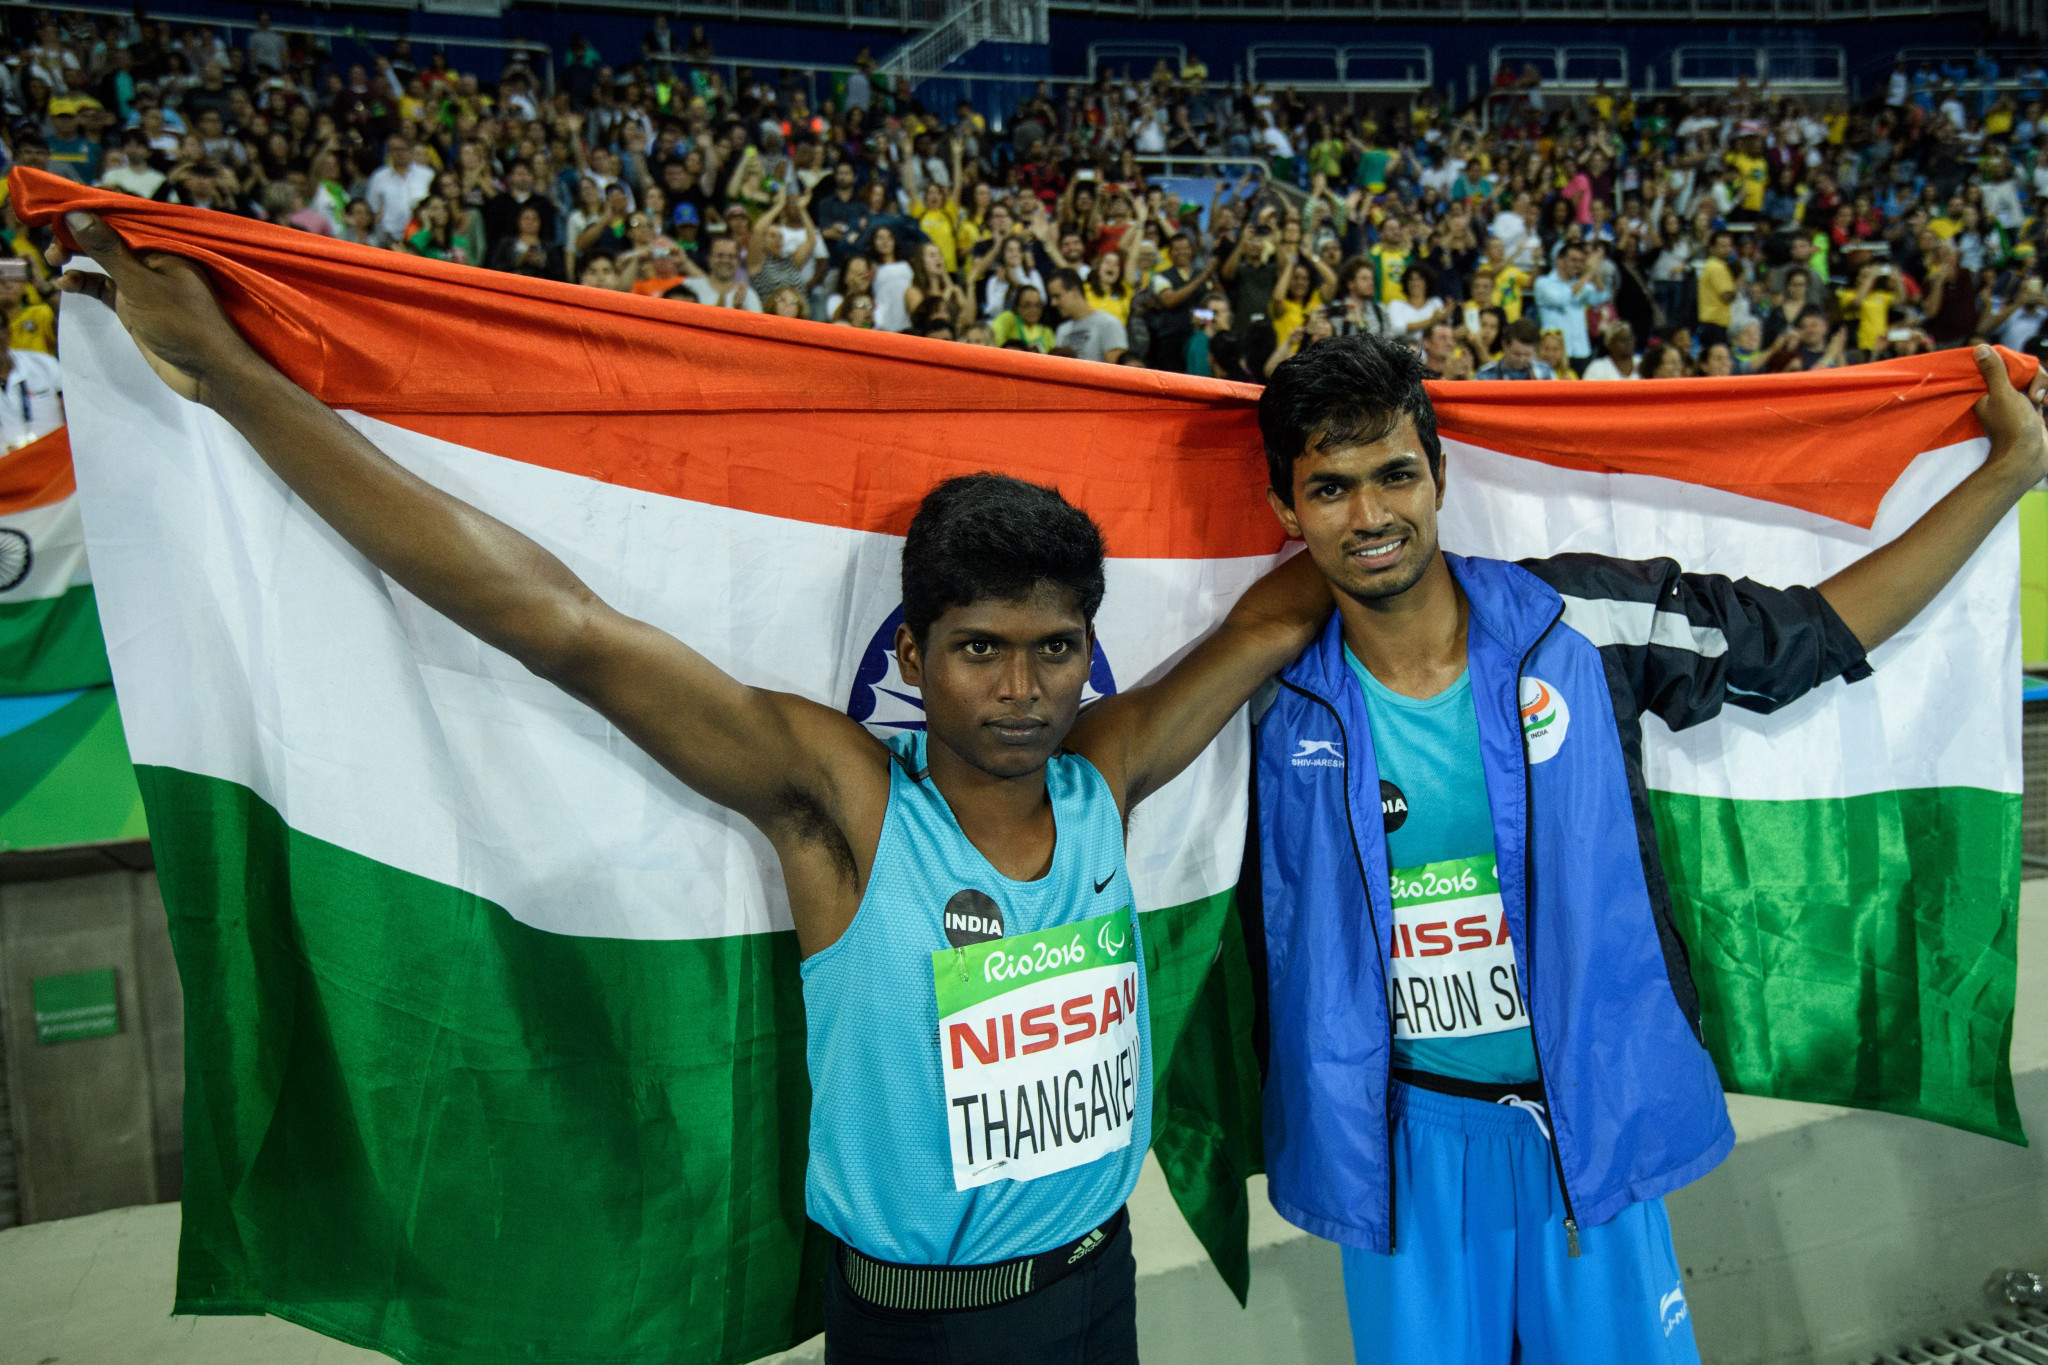 Indian Government to vaccinate all athletes bound for Tokyo 2020